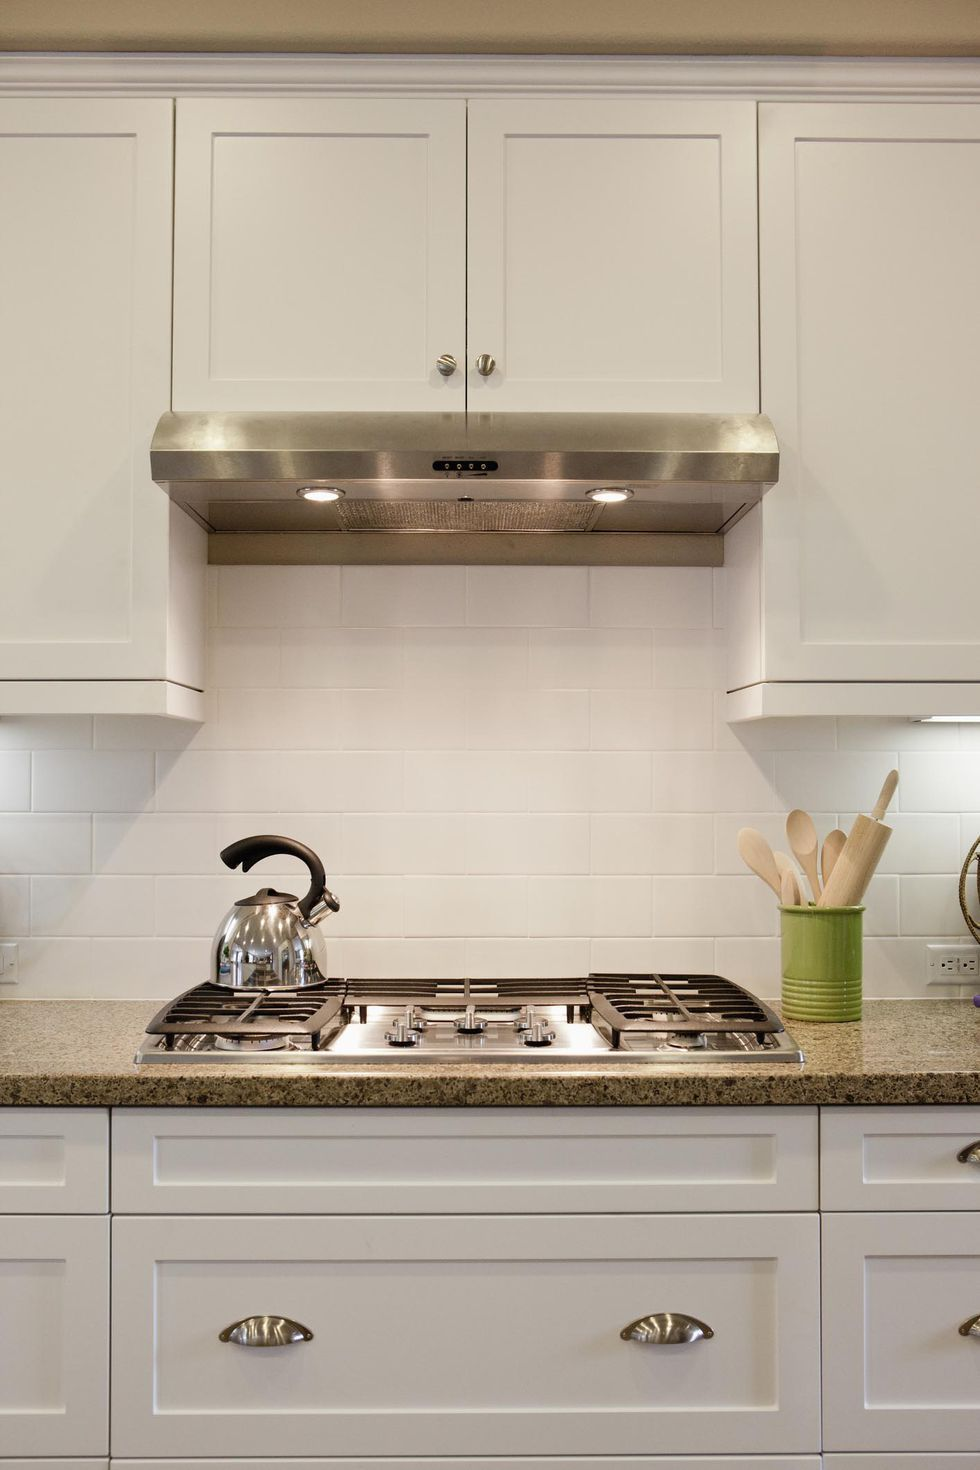 Tasks You Can Tackle in Under an Hour: Degrease Kitchen Cabinets ...